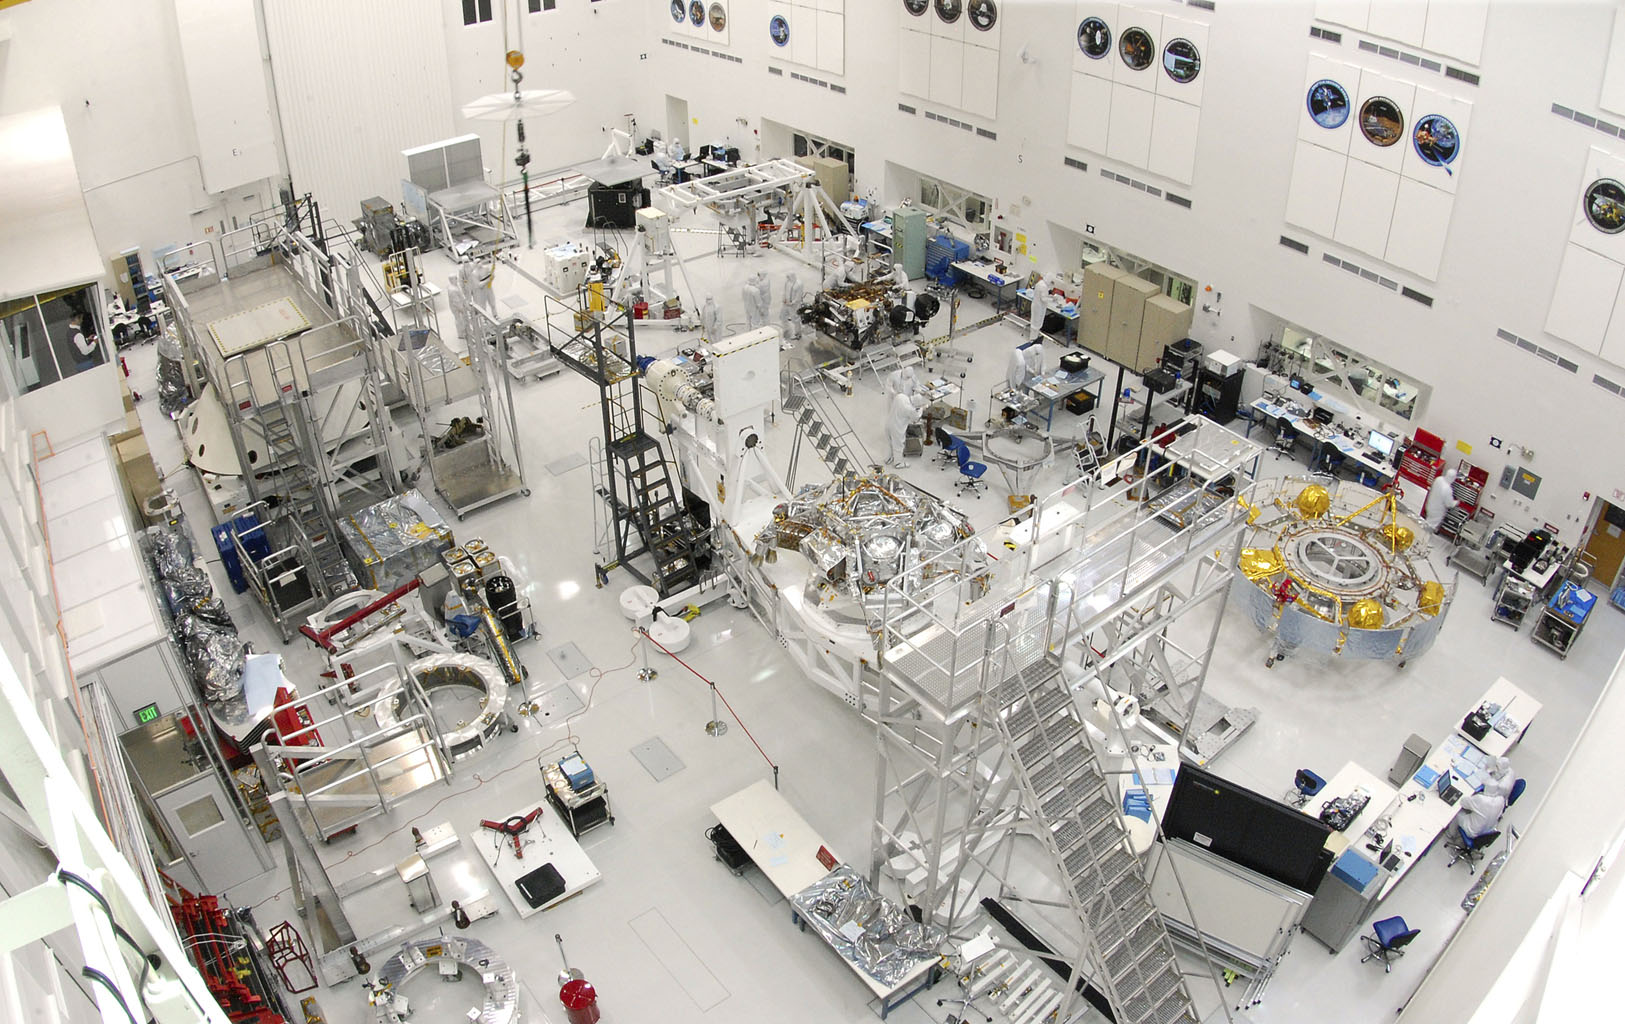 Space Images | Working on Curiosity in JPL Spacecraft ...